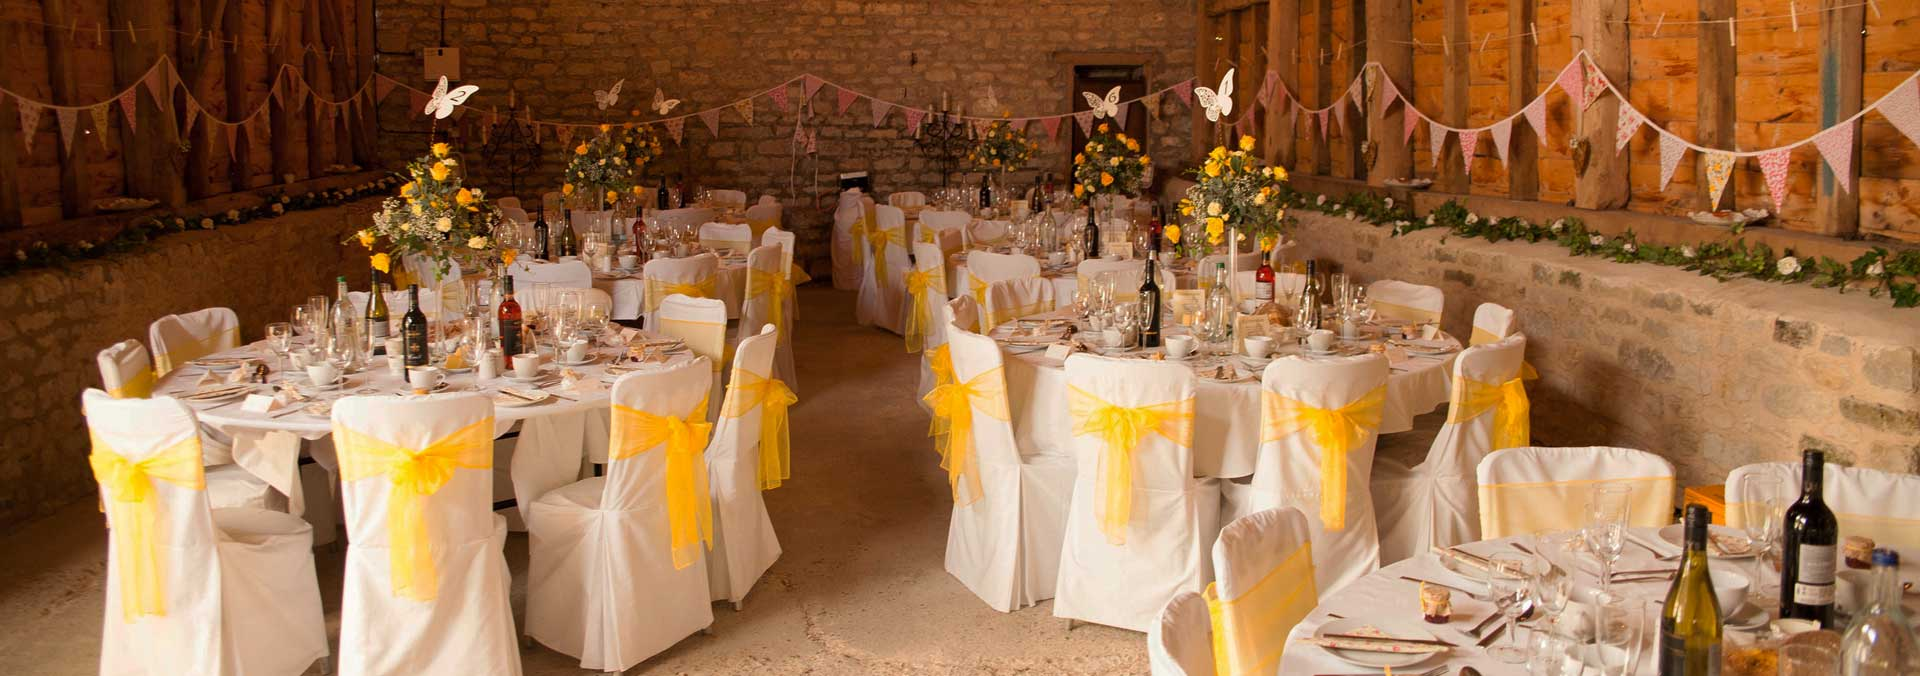 AN INCREDIBLE BARN WEDDING VENUE